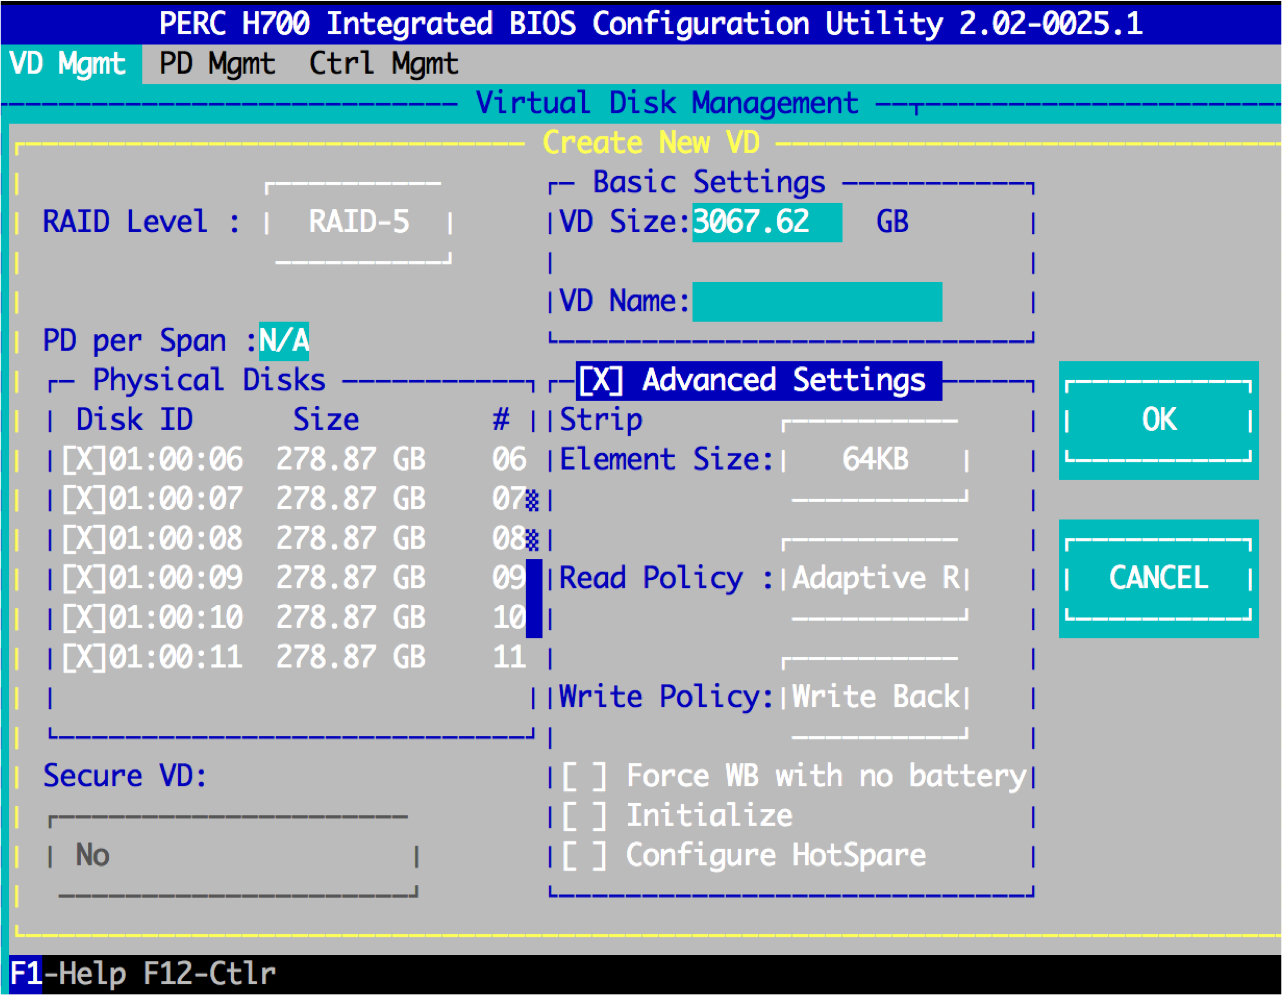 Initialize It Will Destroy All Data On Virtual Disk